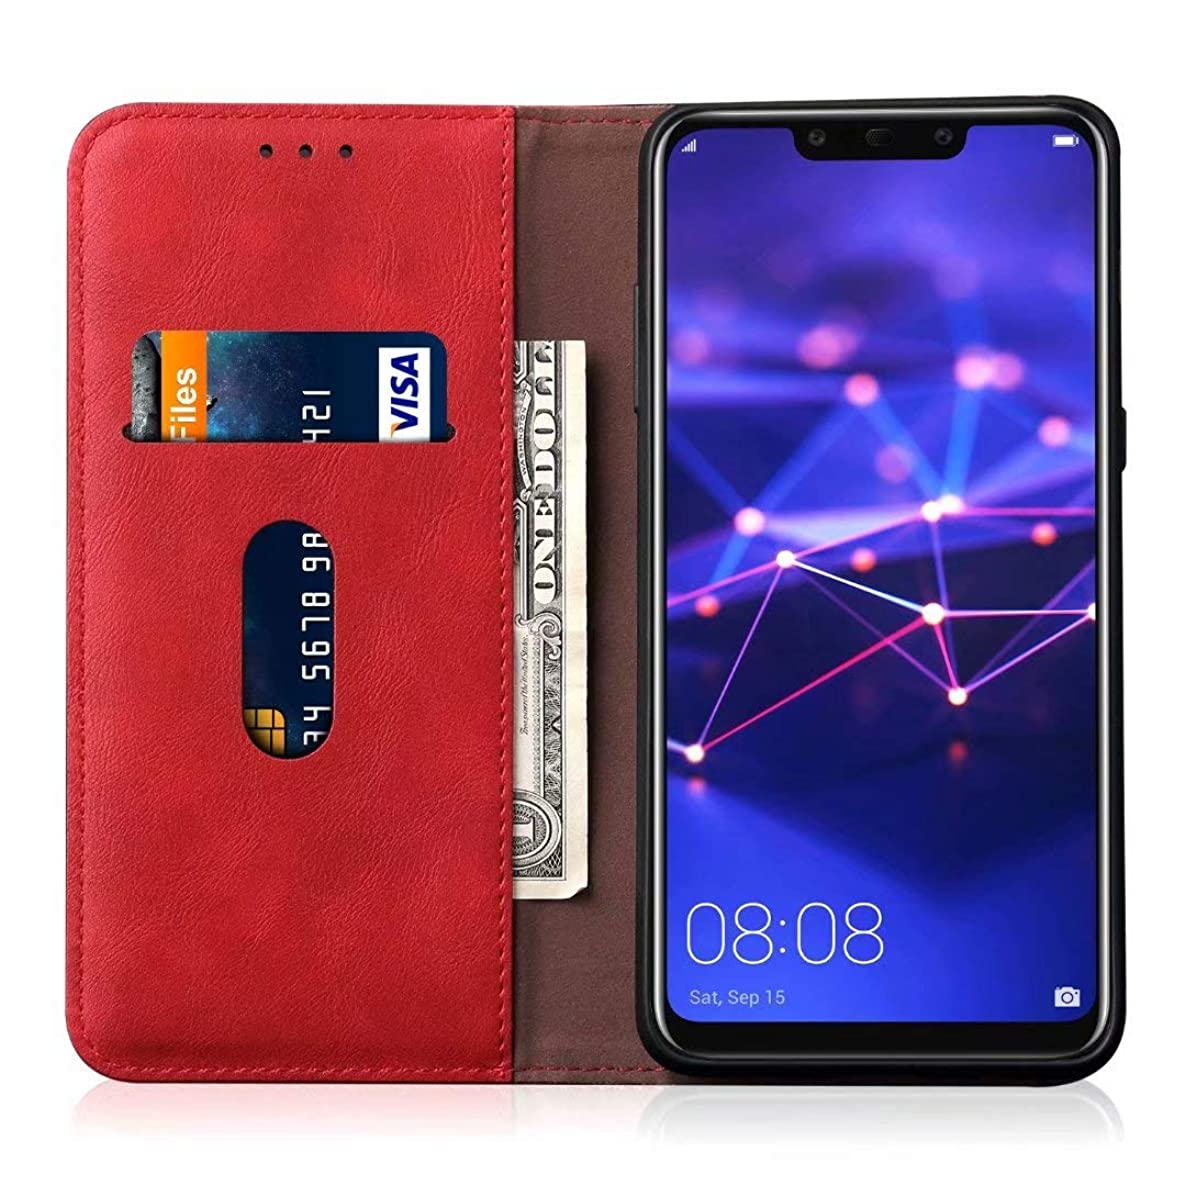 Huawei Mate 20 lite,MYLBOO Lychee Texture PU Leather Wallet Case with Stand Function Card Slots for Huawei Mate 20 lite (red)